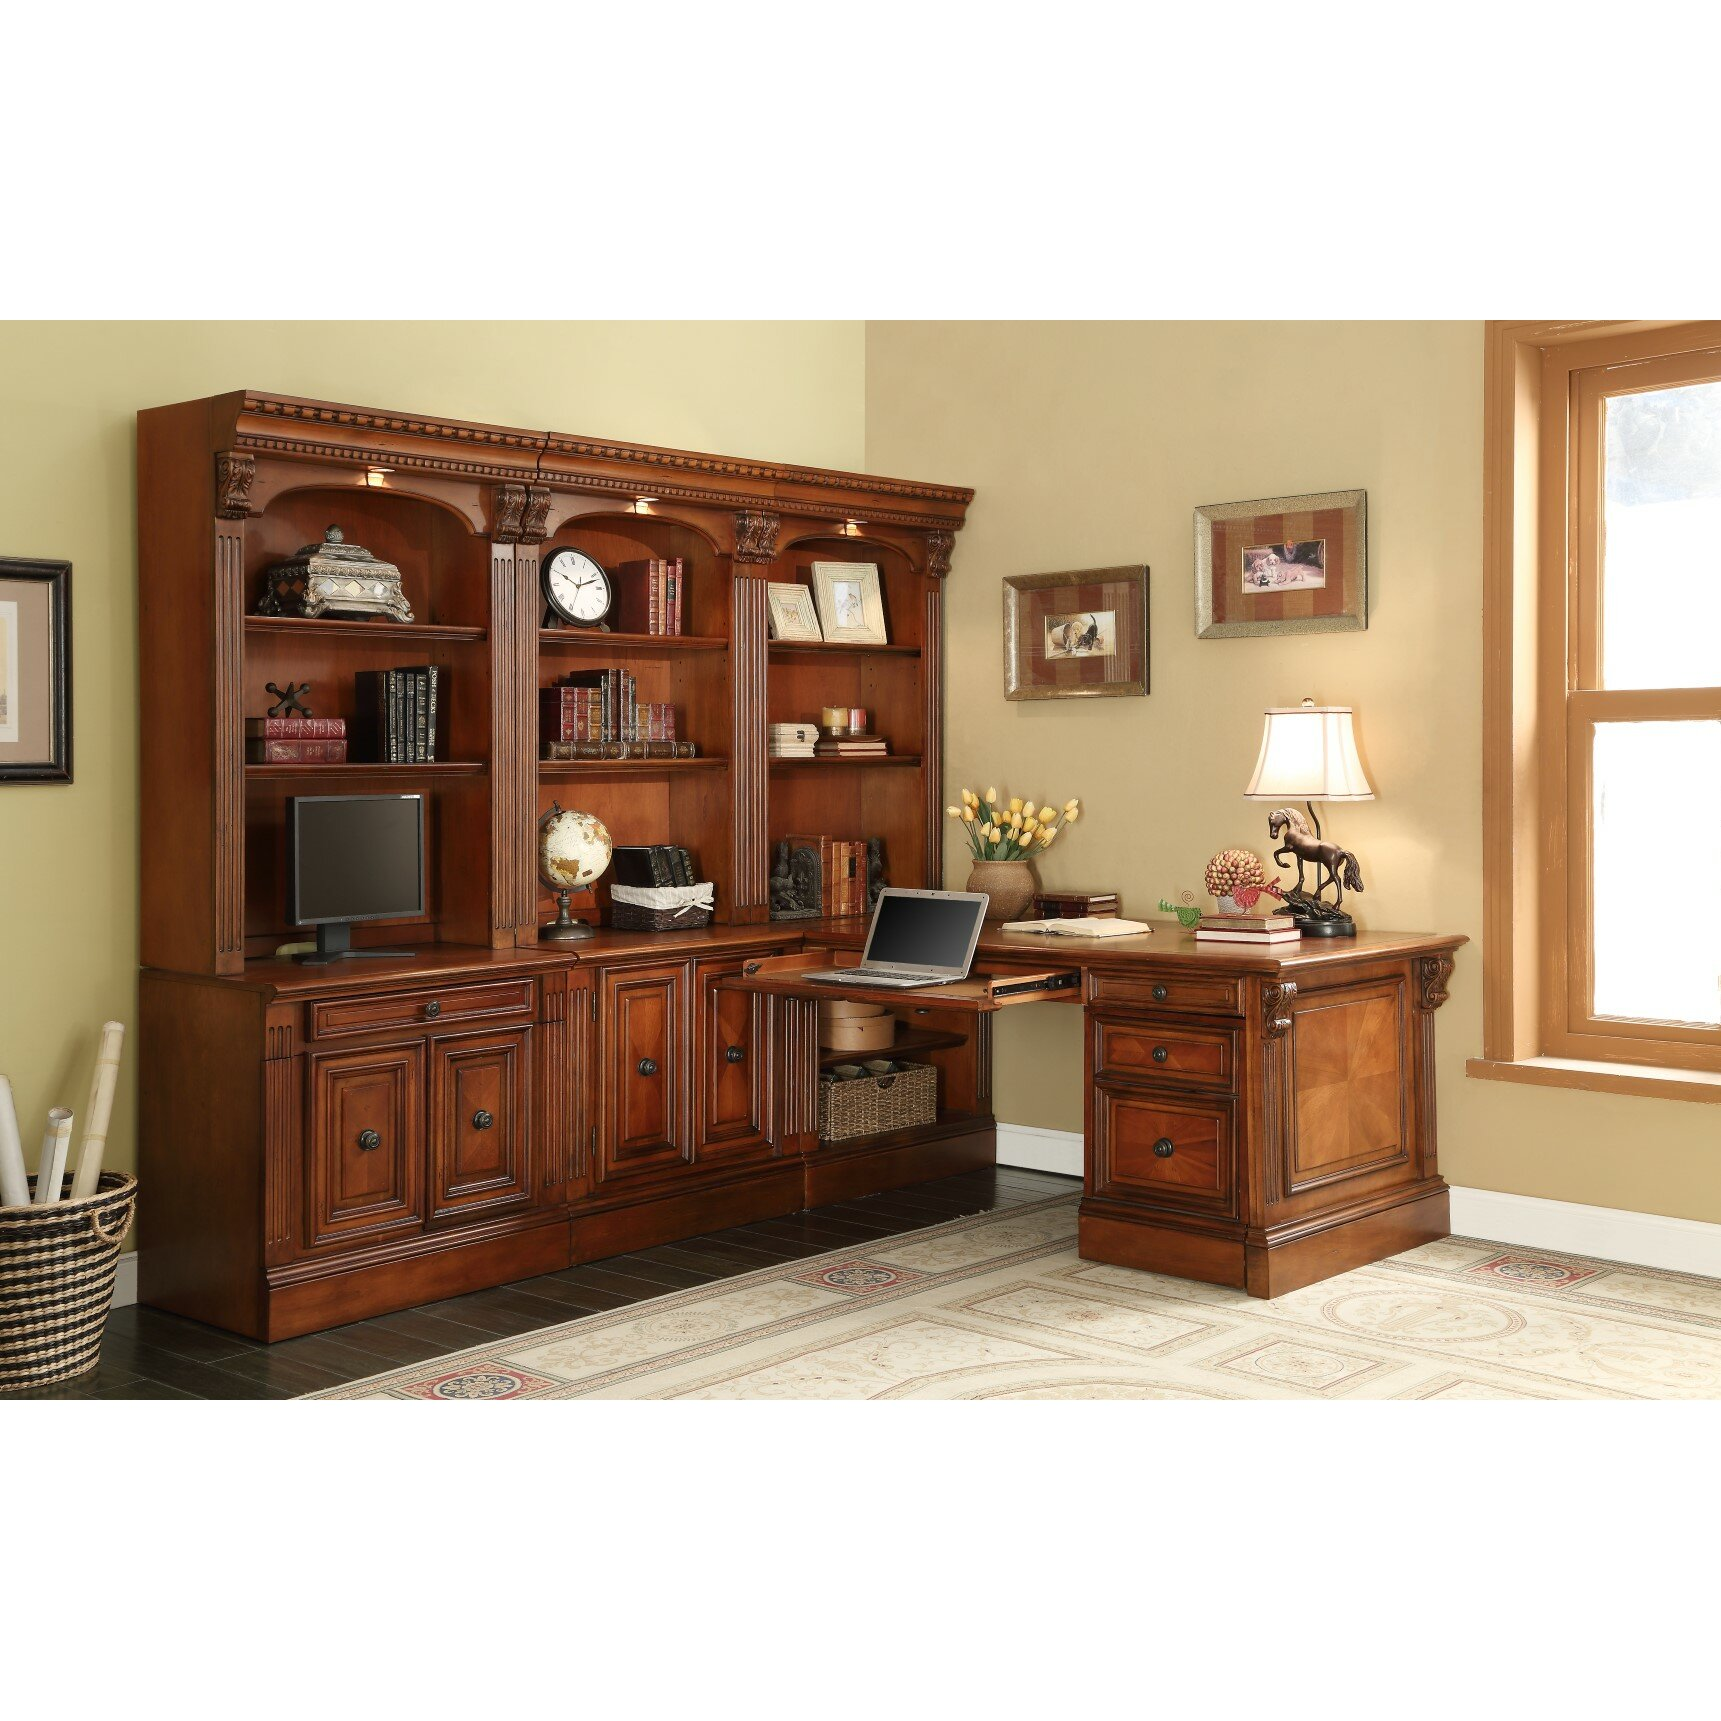 Nice High Quality Huntington House Furniture Reviews Huntington House Furniture  Reviews Of Furniture Accent Furniture